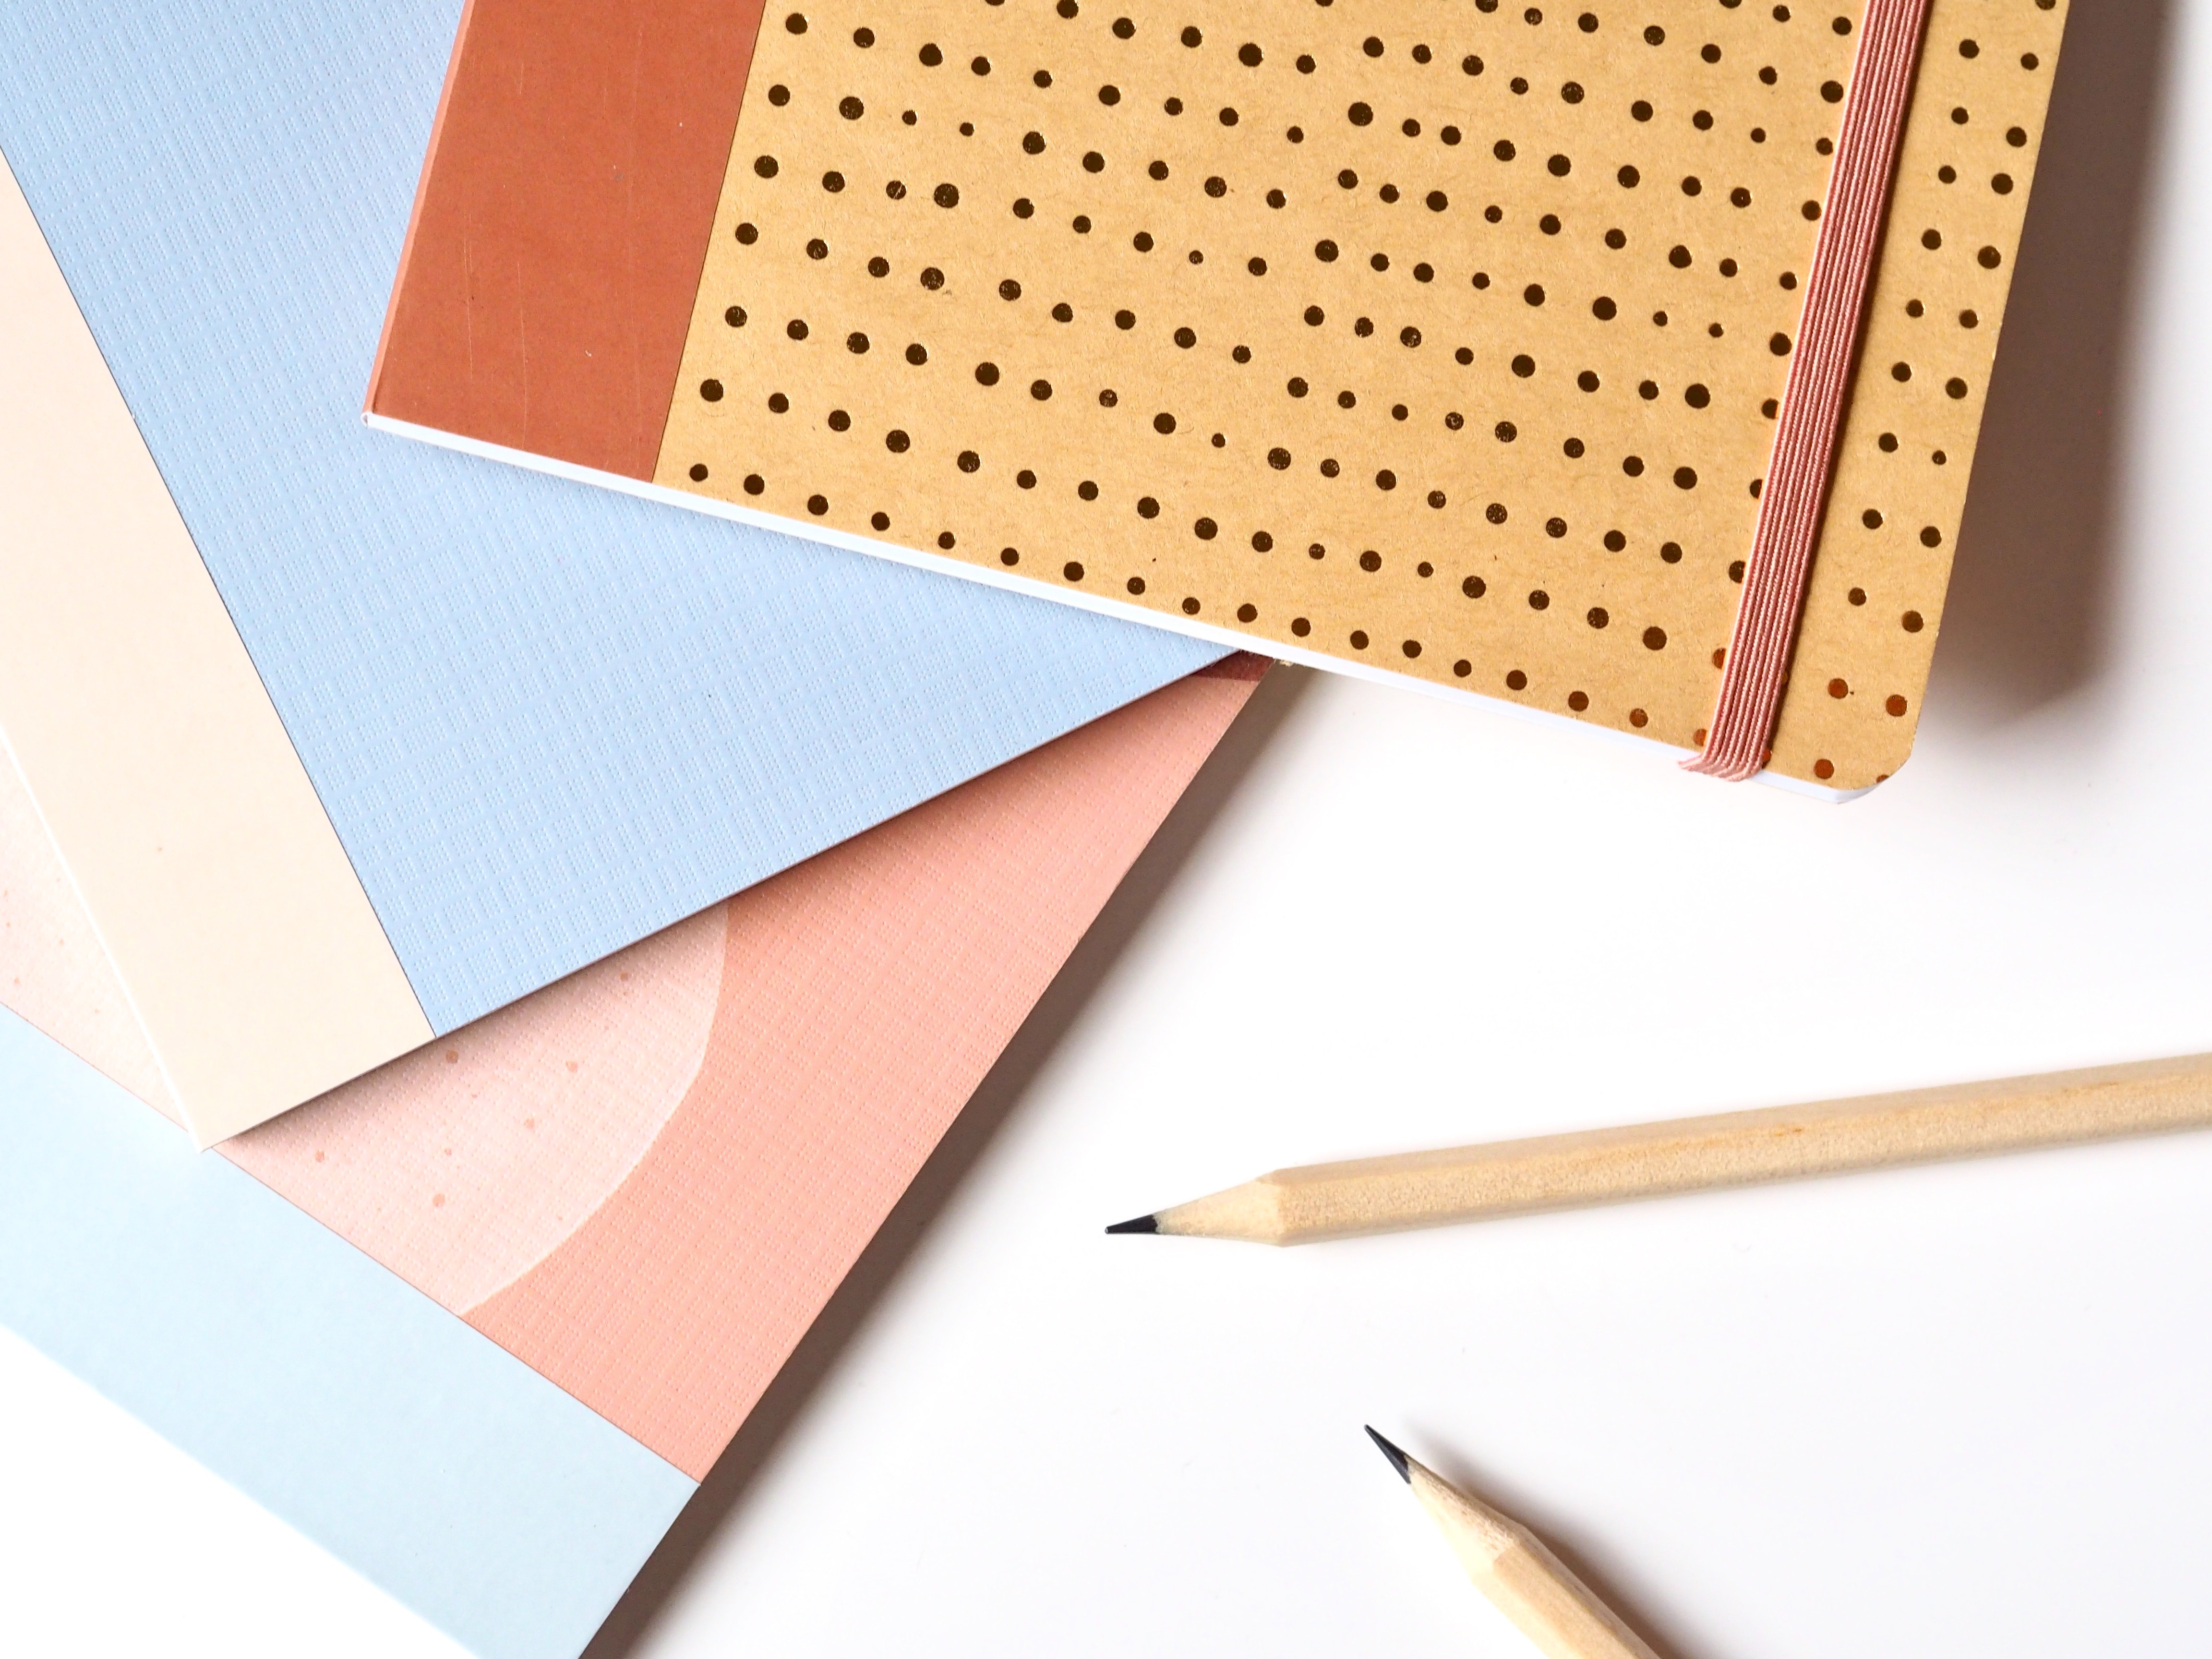 close up of colorful stationery next to pencils